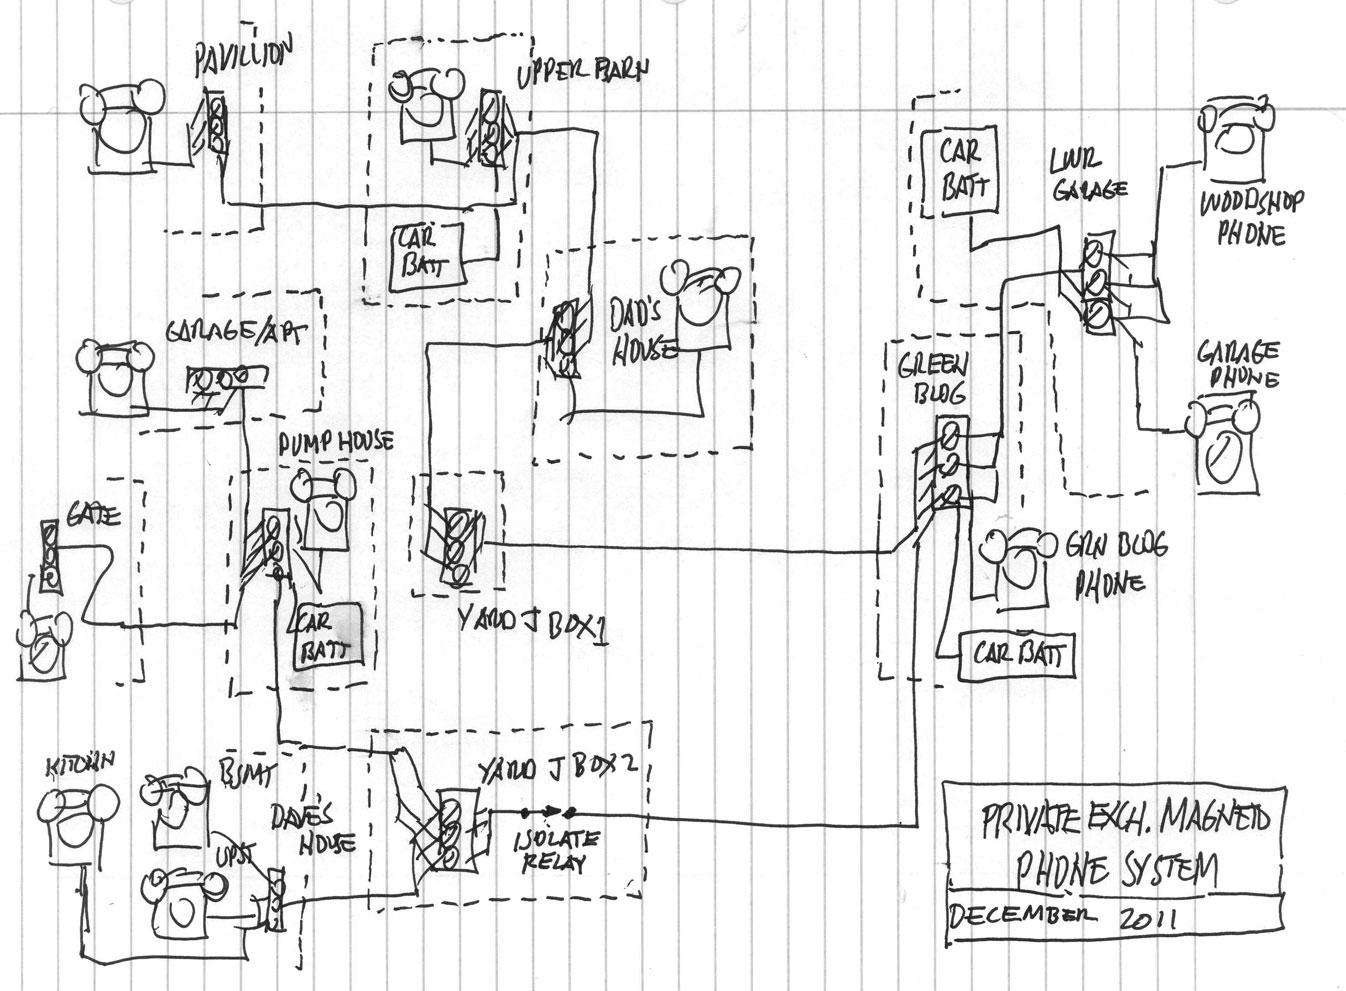 Phone System Wiring - Schema Wiring Diagram - What Is The Asterisk On The Nest Wiring Diagram?